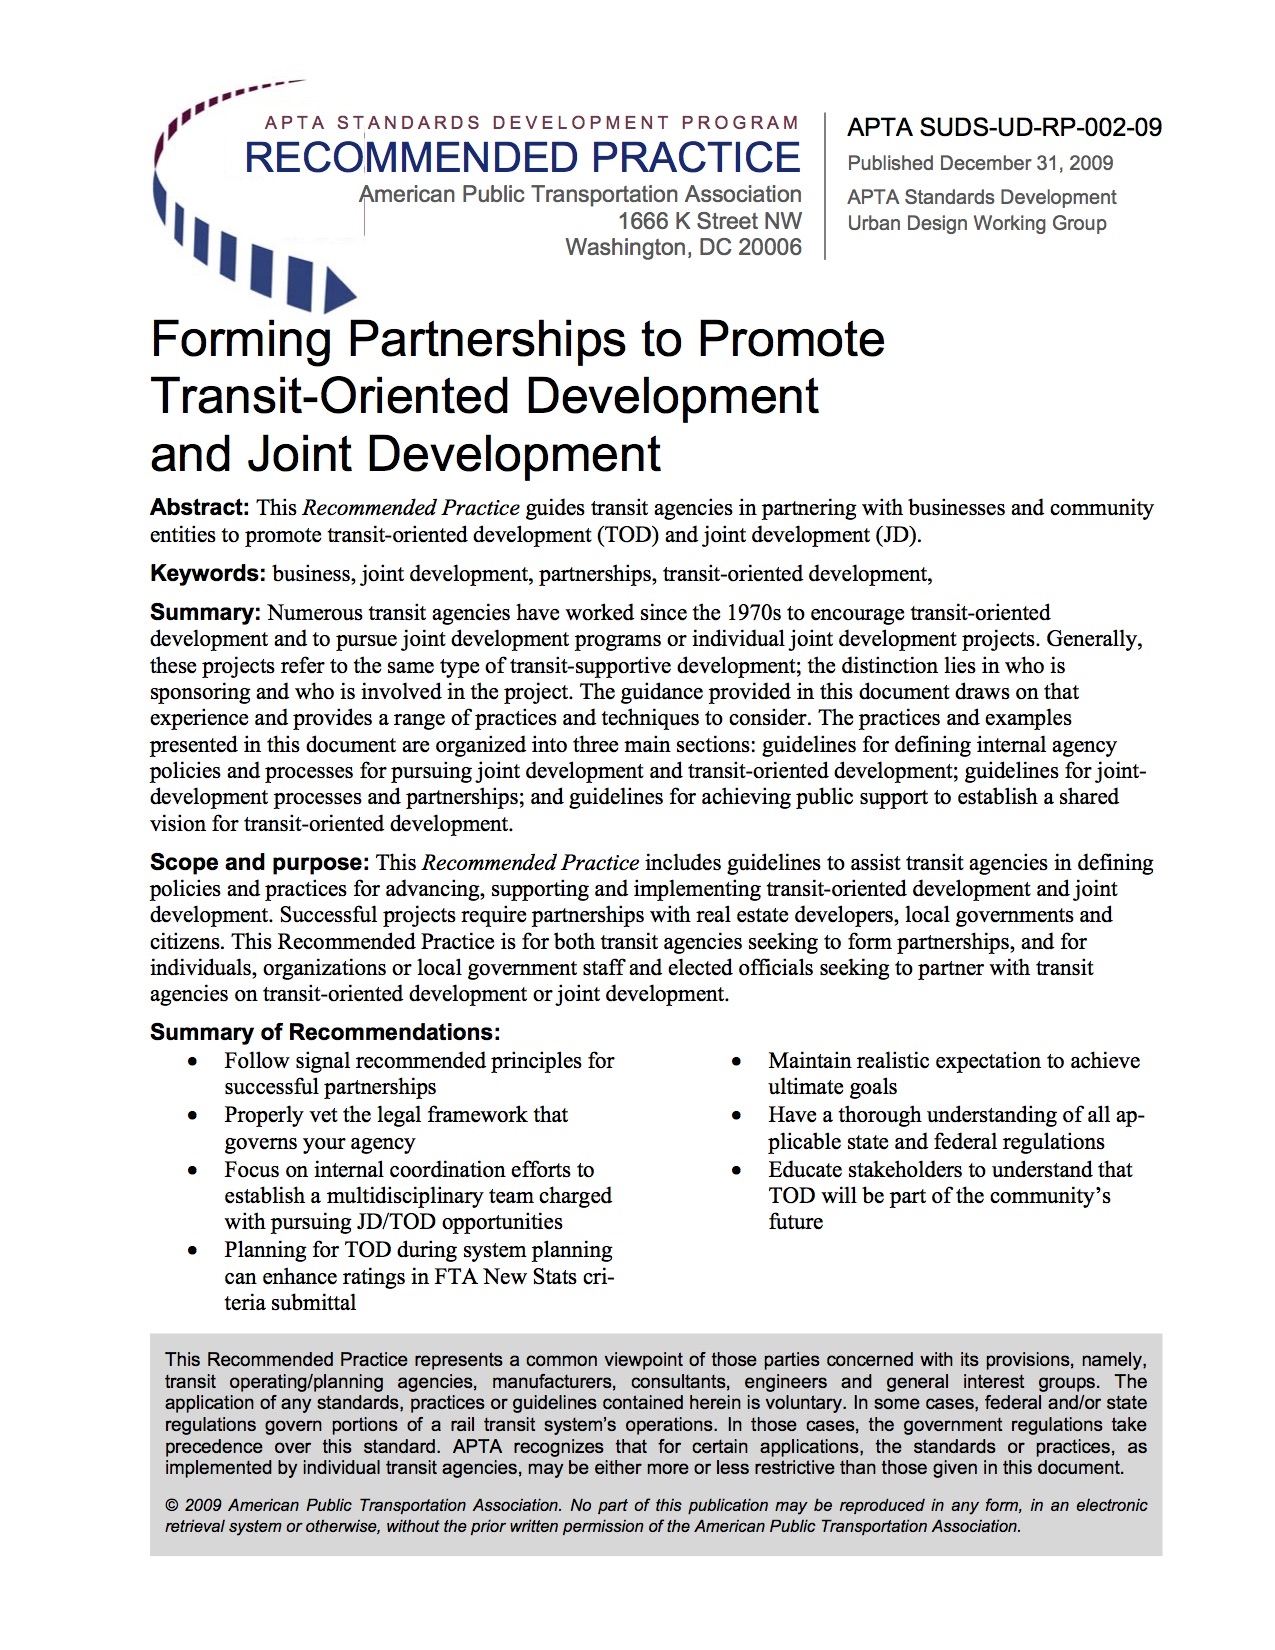 Forming Partnerships to Promote Transit-Oriented Development and Joint Development